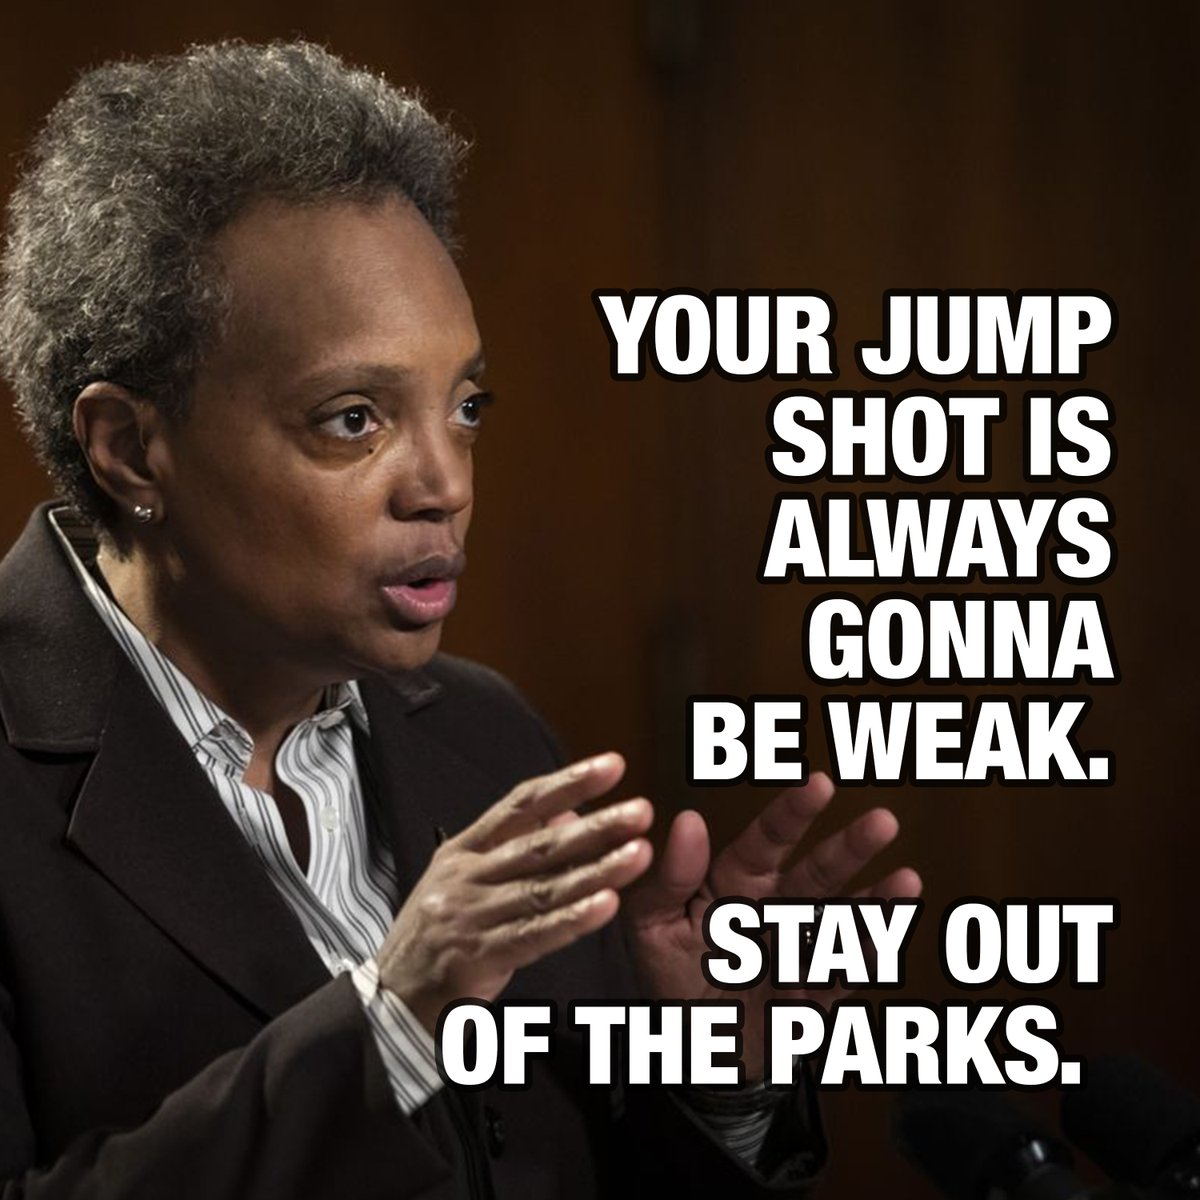 Just a friendly reminder from your Auntie to stay home. #StayHomeSaveLives